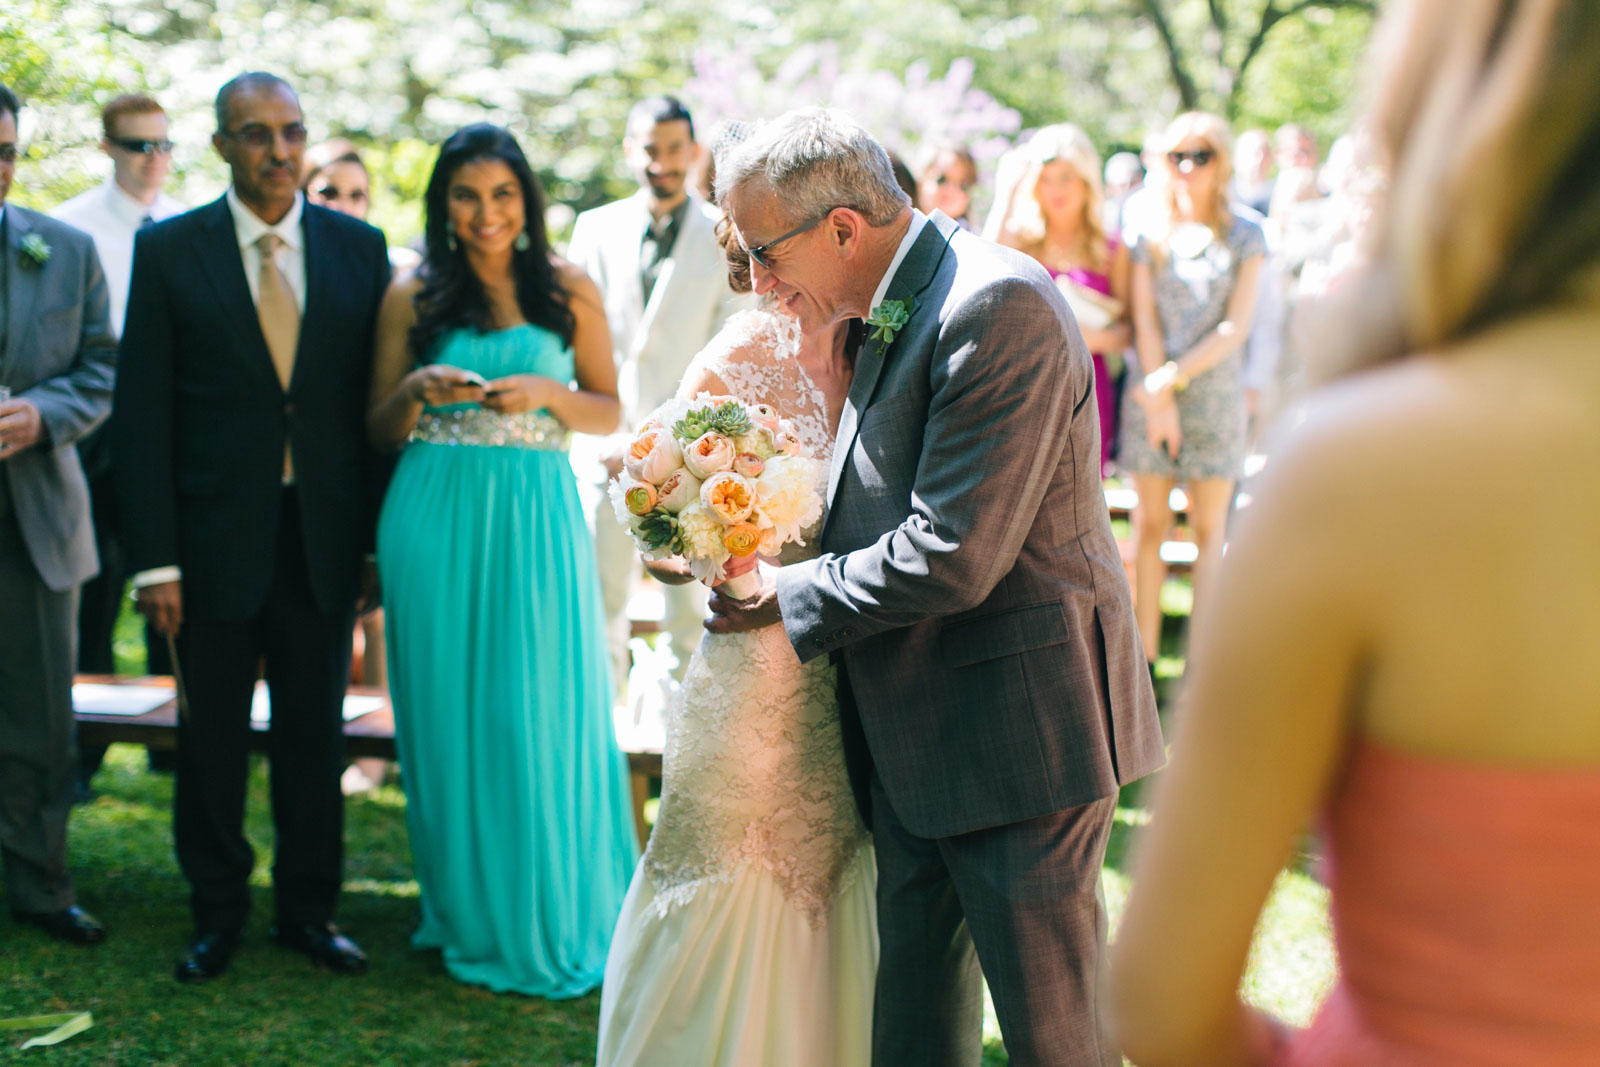 father of the bride giving bride away at sunny outdoor wedding ceremony in garden in Boston